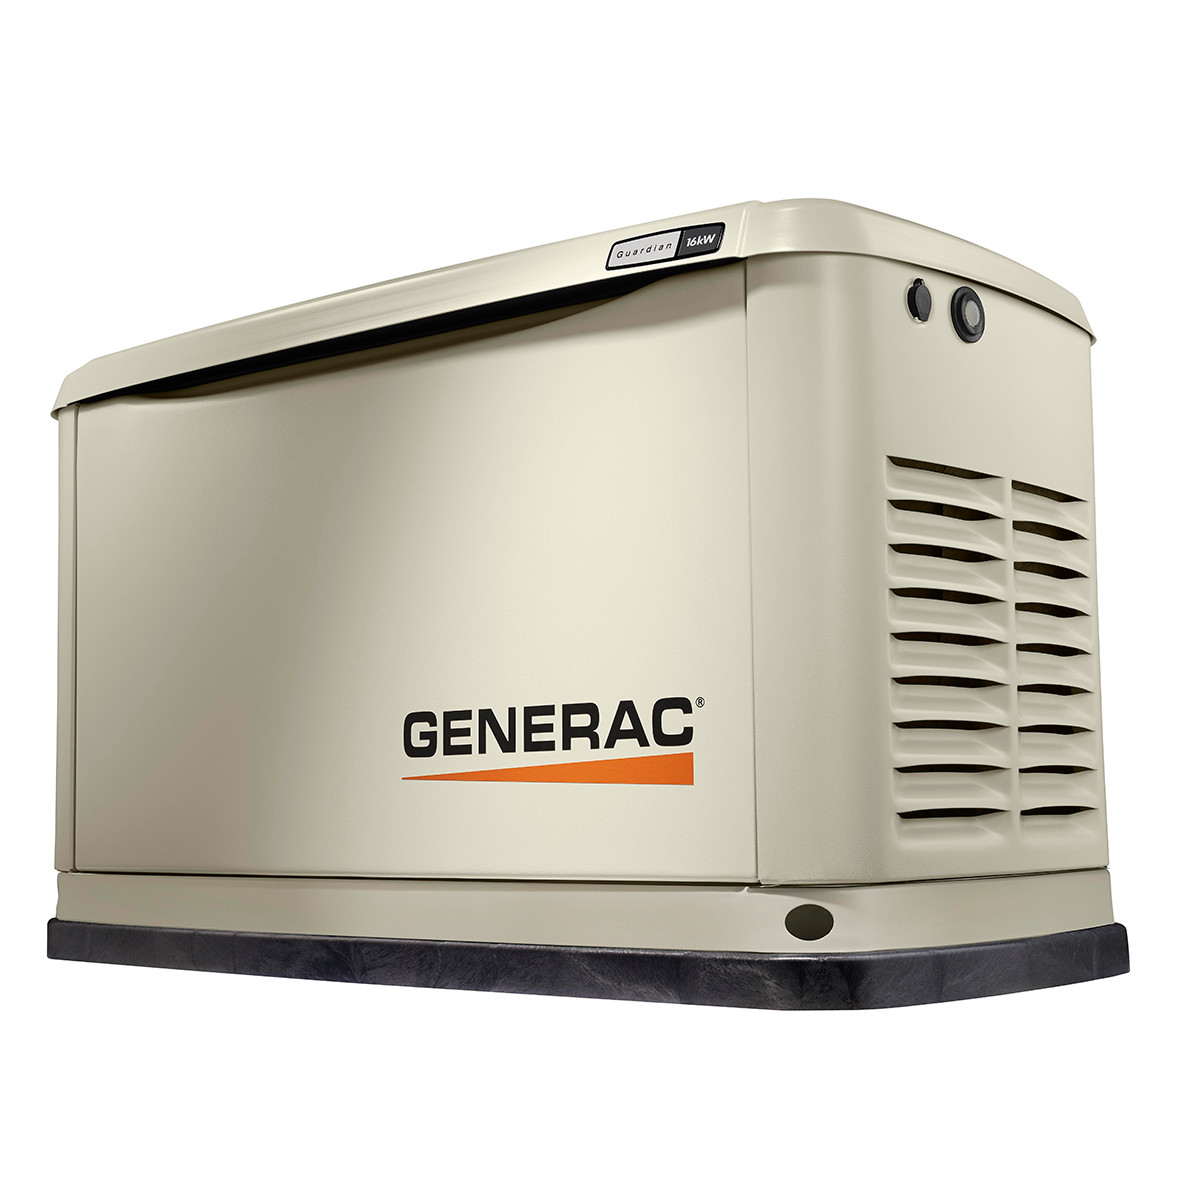 Generac 7035 16kw Guardian Series Generators Wiring Instructions Generator With Wi Fi